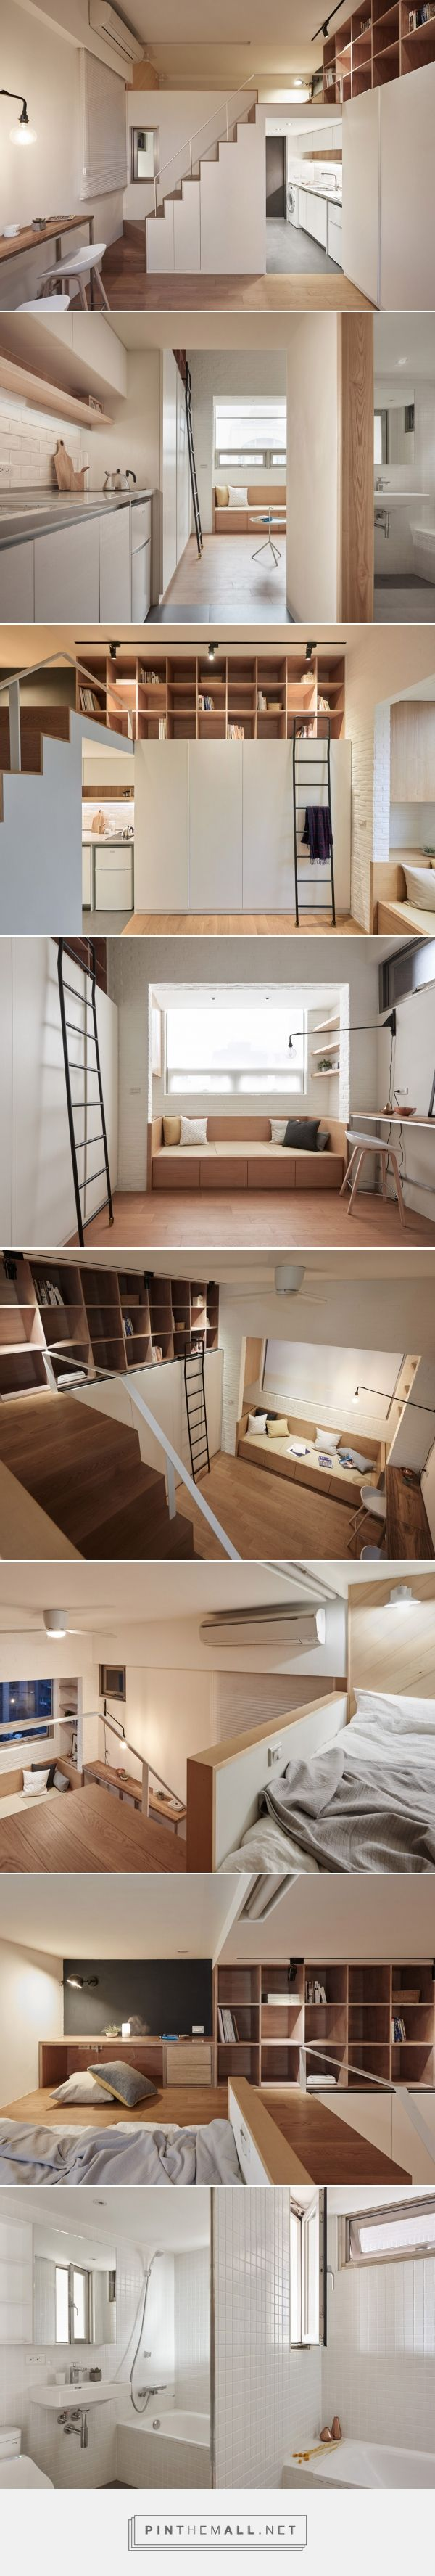 Bedroom tiny home plans on wheels furthermore romeo 500 sq ft log - Like The Ladder And Cubbies In Front Of The Cupboards